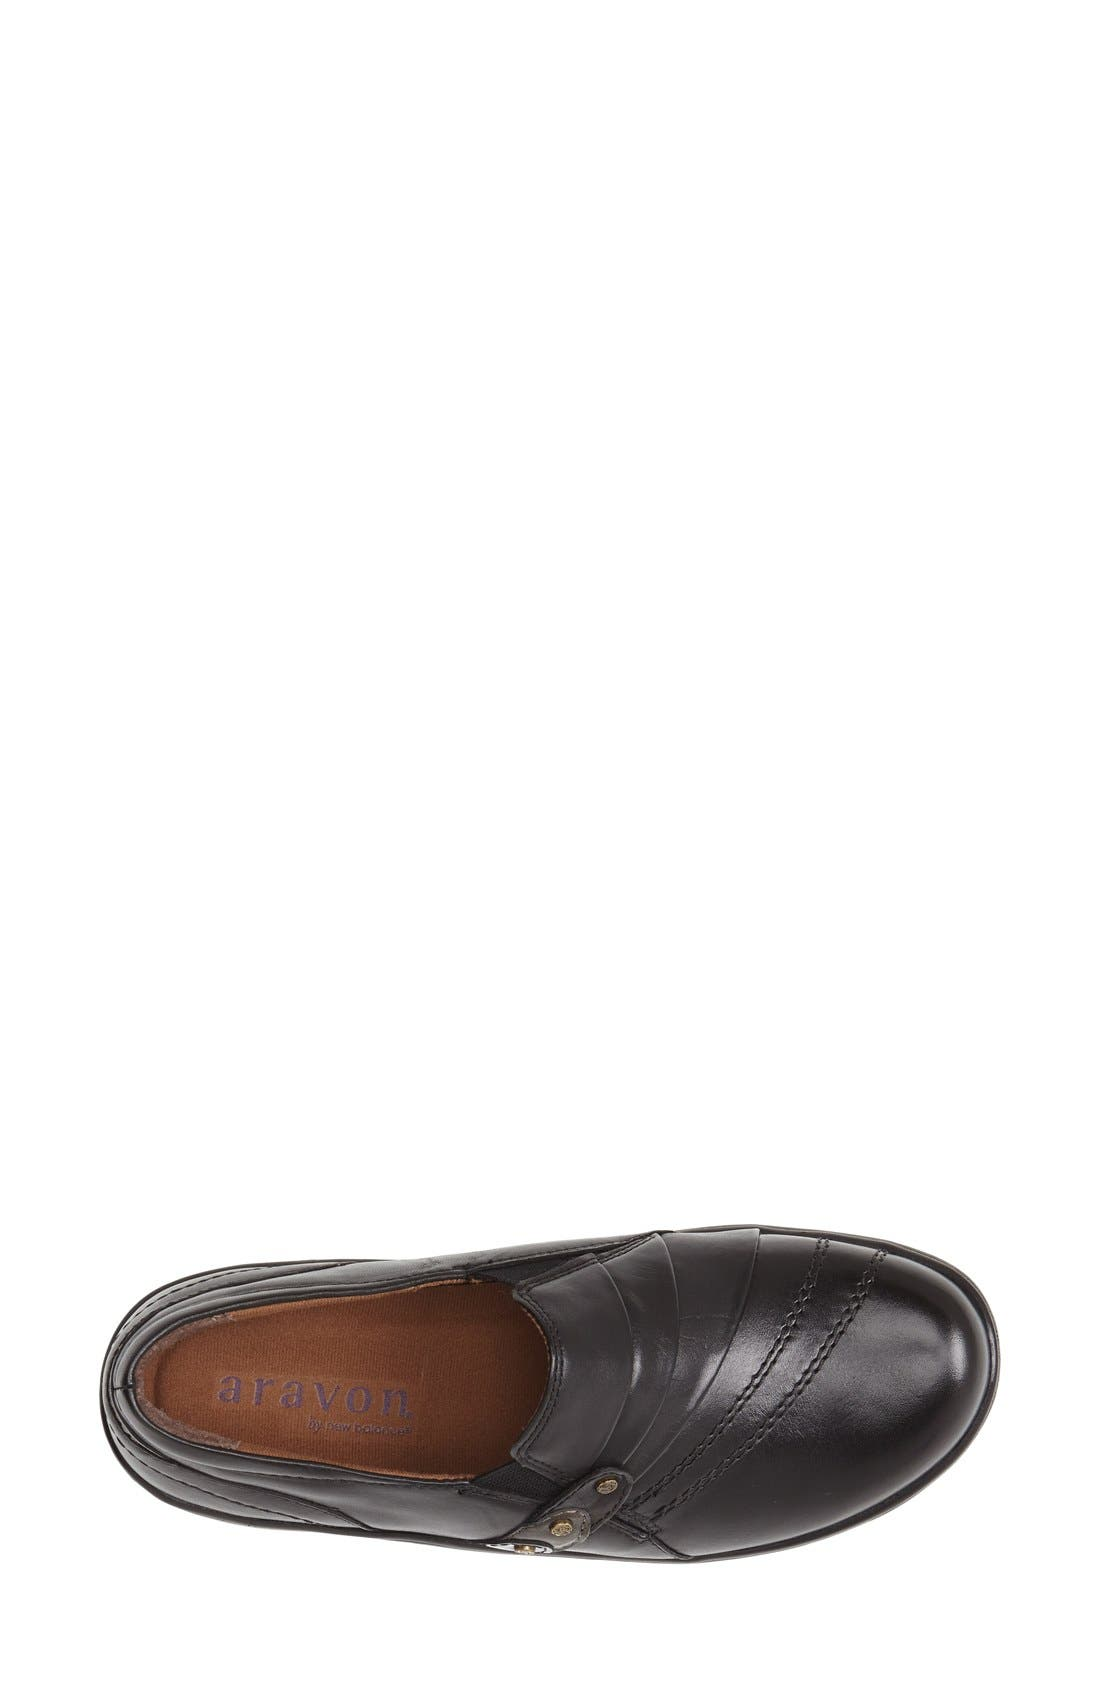 Alternate Image 3  - Aravon 'Danielle' Loafer Flat (Women)